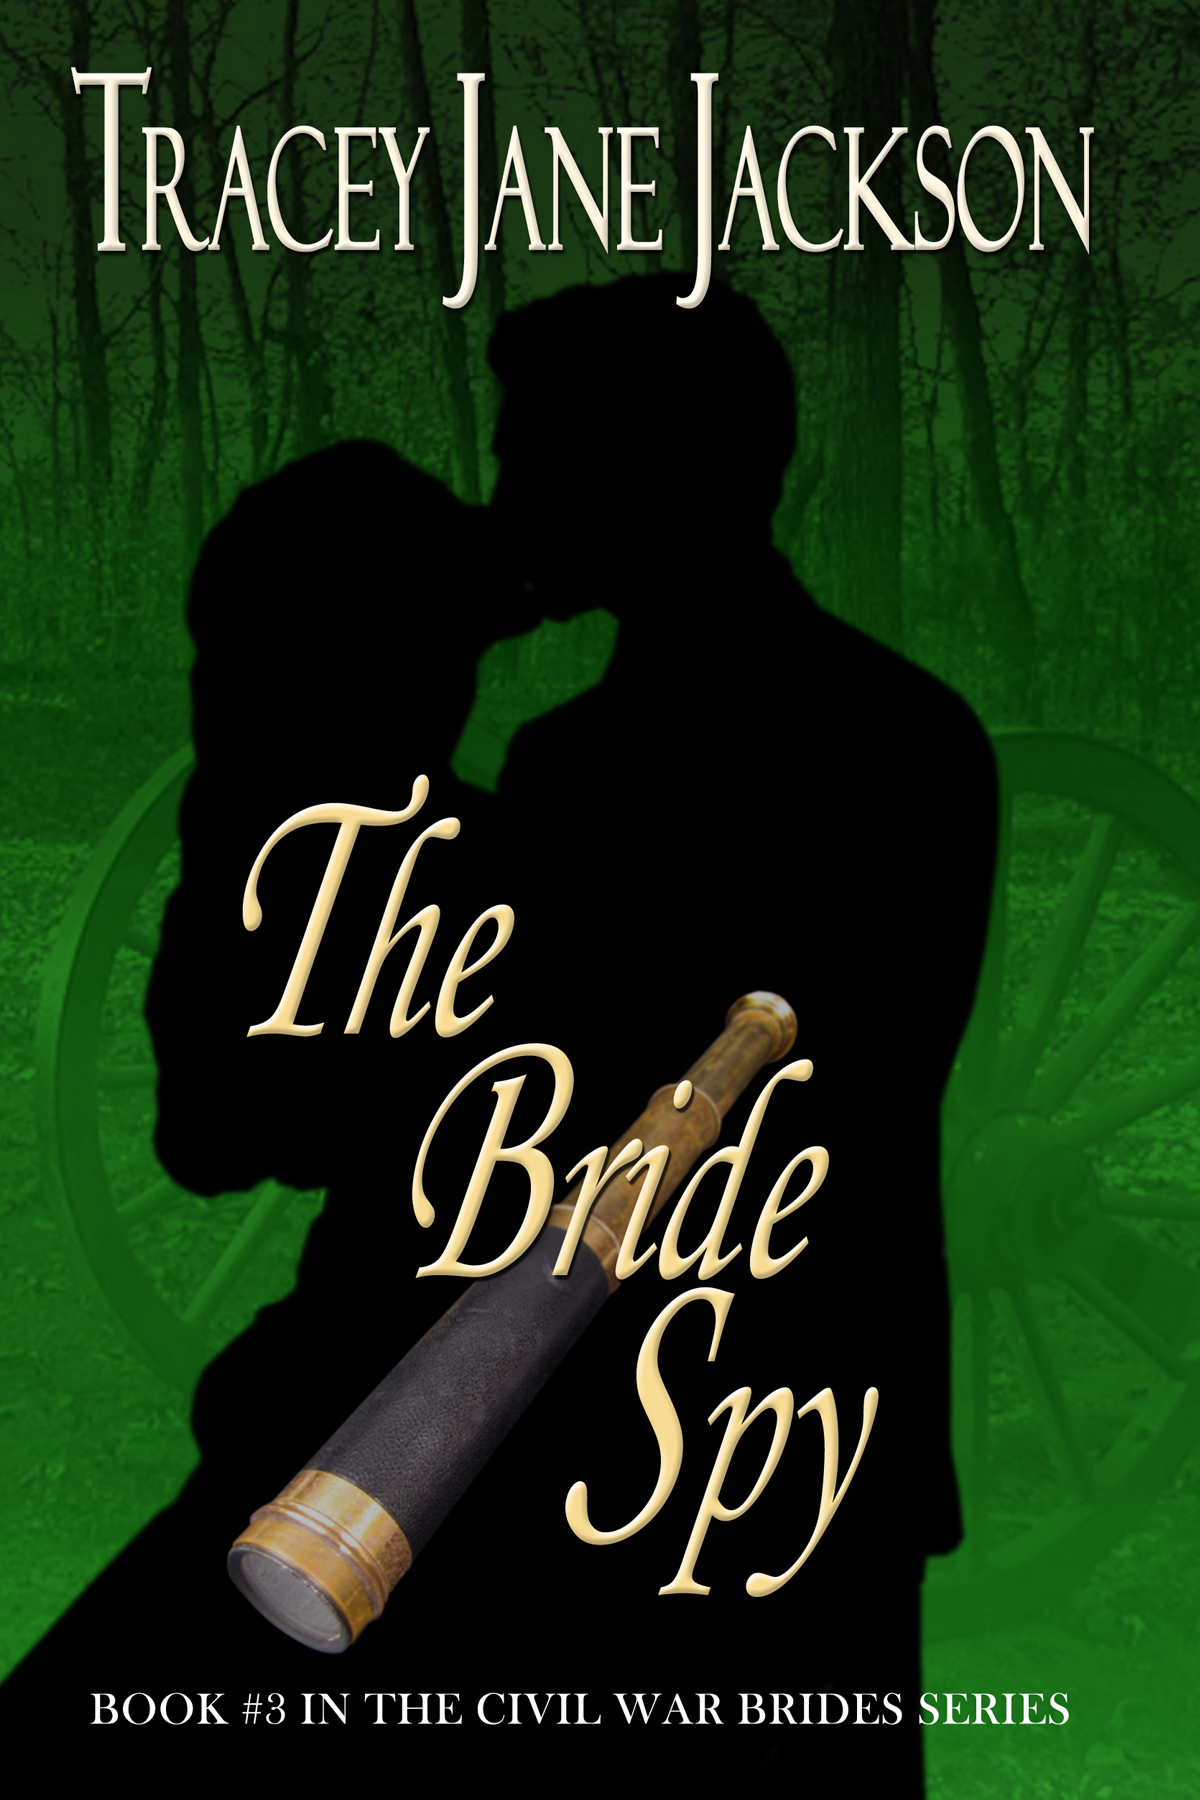 The Bride Spy